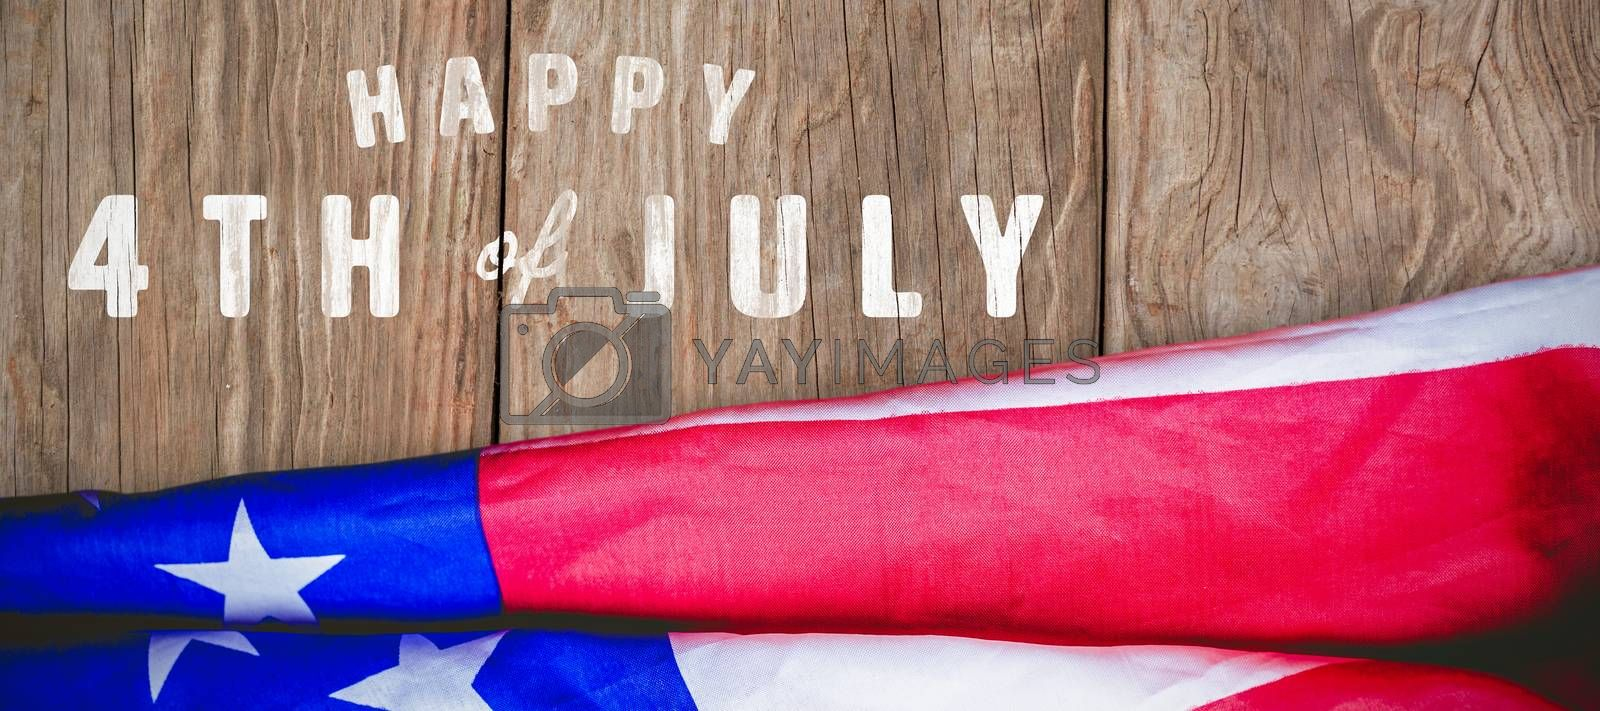 Digitally generated image of happy 4th of july text against close-up of wooden texture